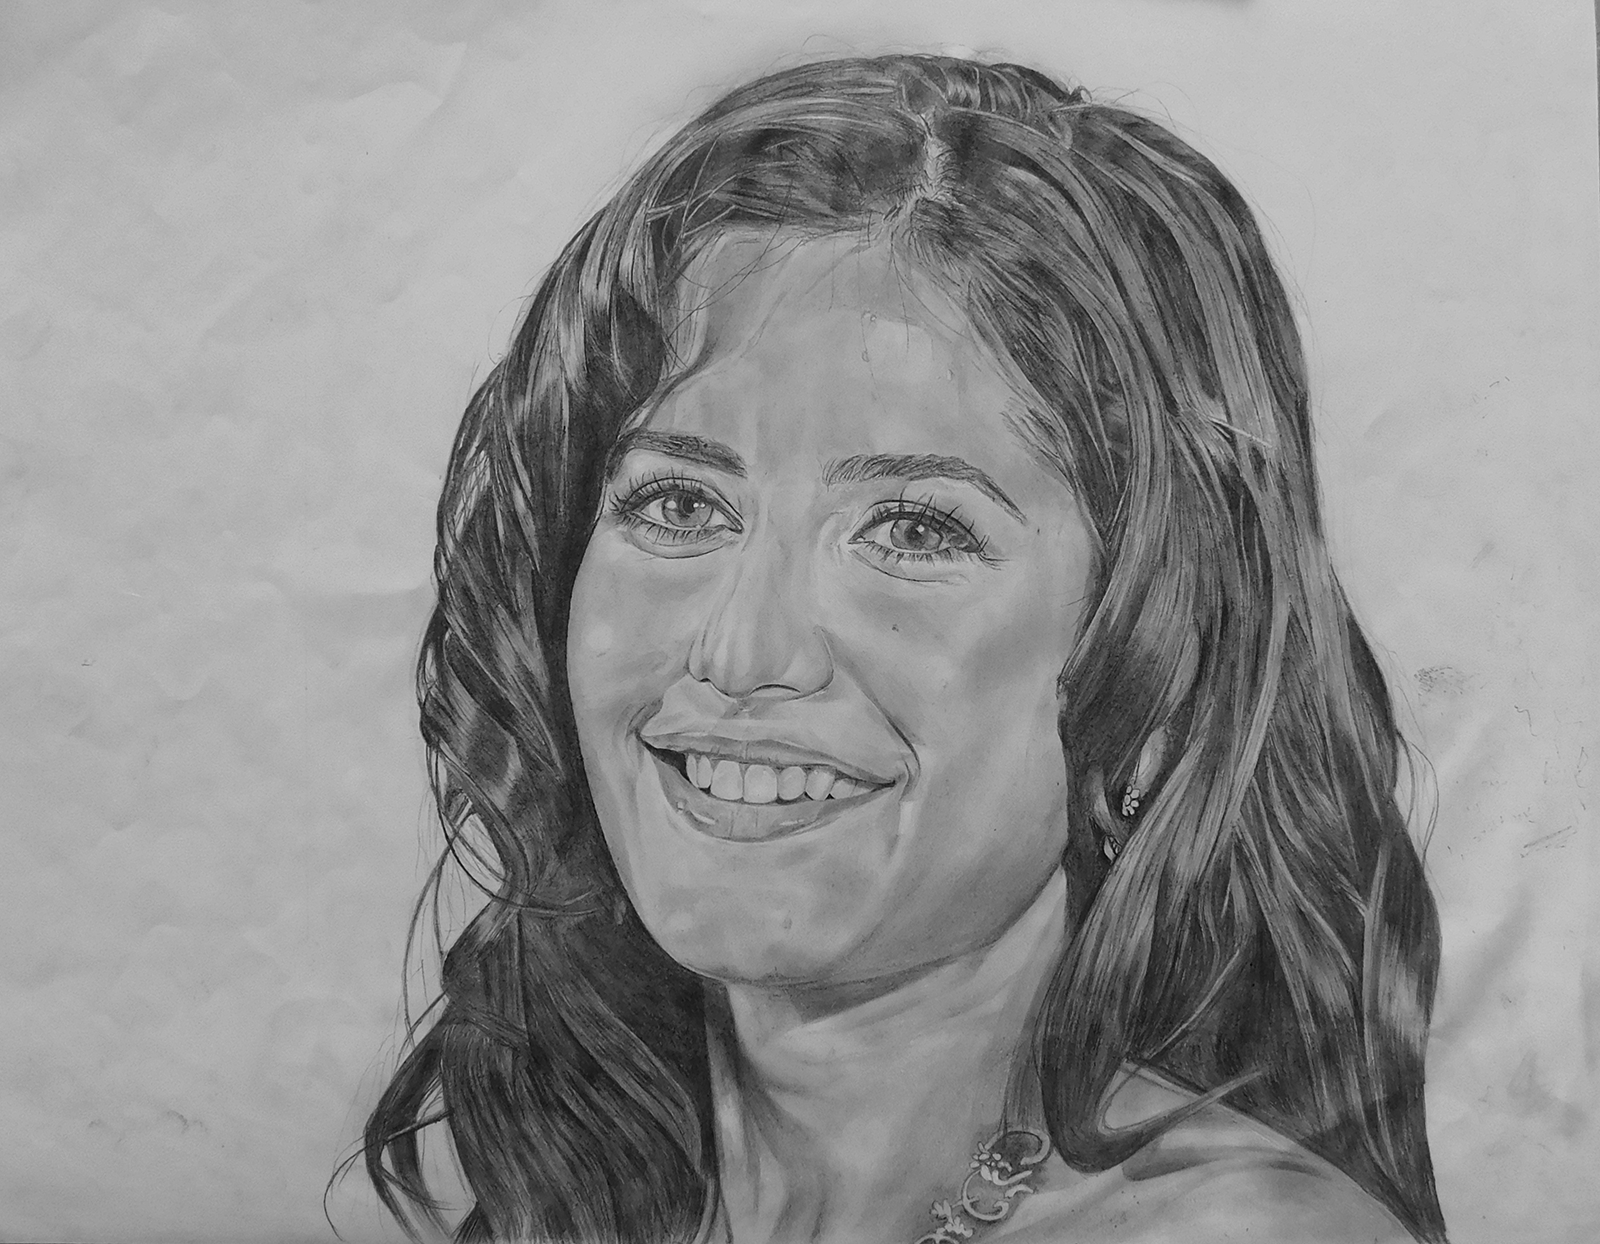 Katrina Sketch Pencil Sketch